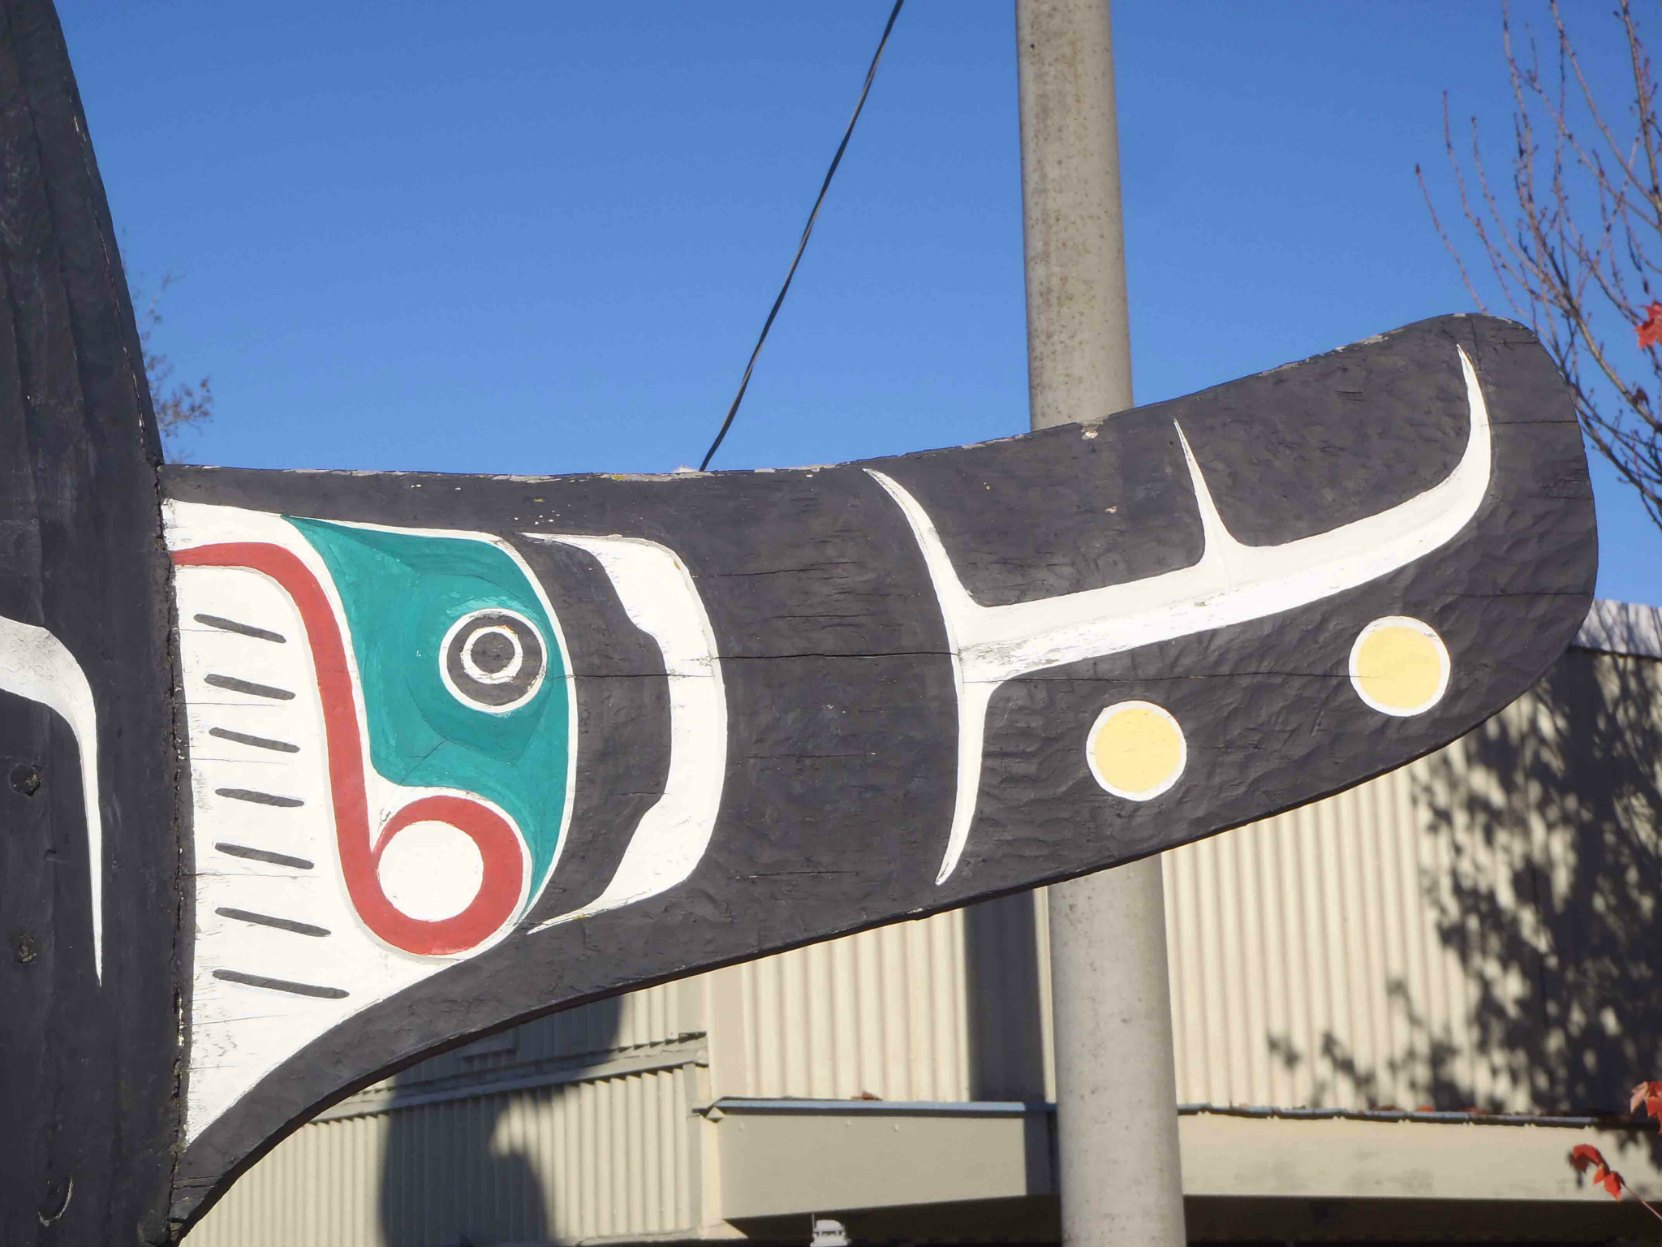 Sea and Sky pole, Killer Whale figure - dorsal fin detail, Government Street at Station Street, Duncan, B.C.